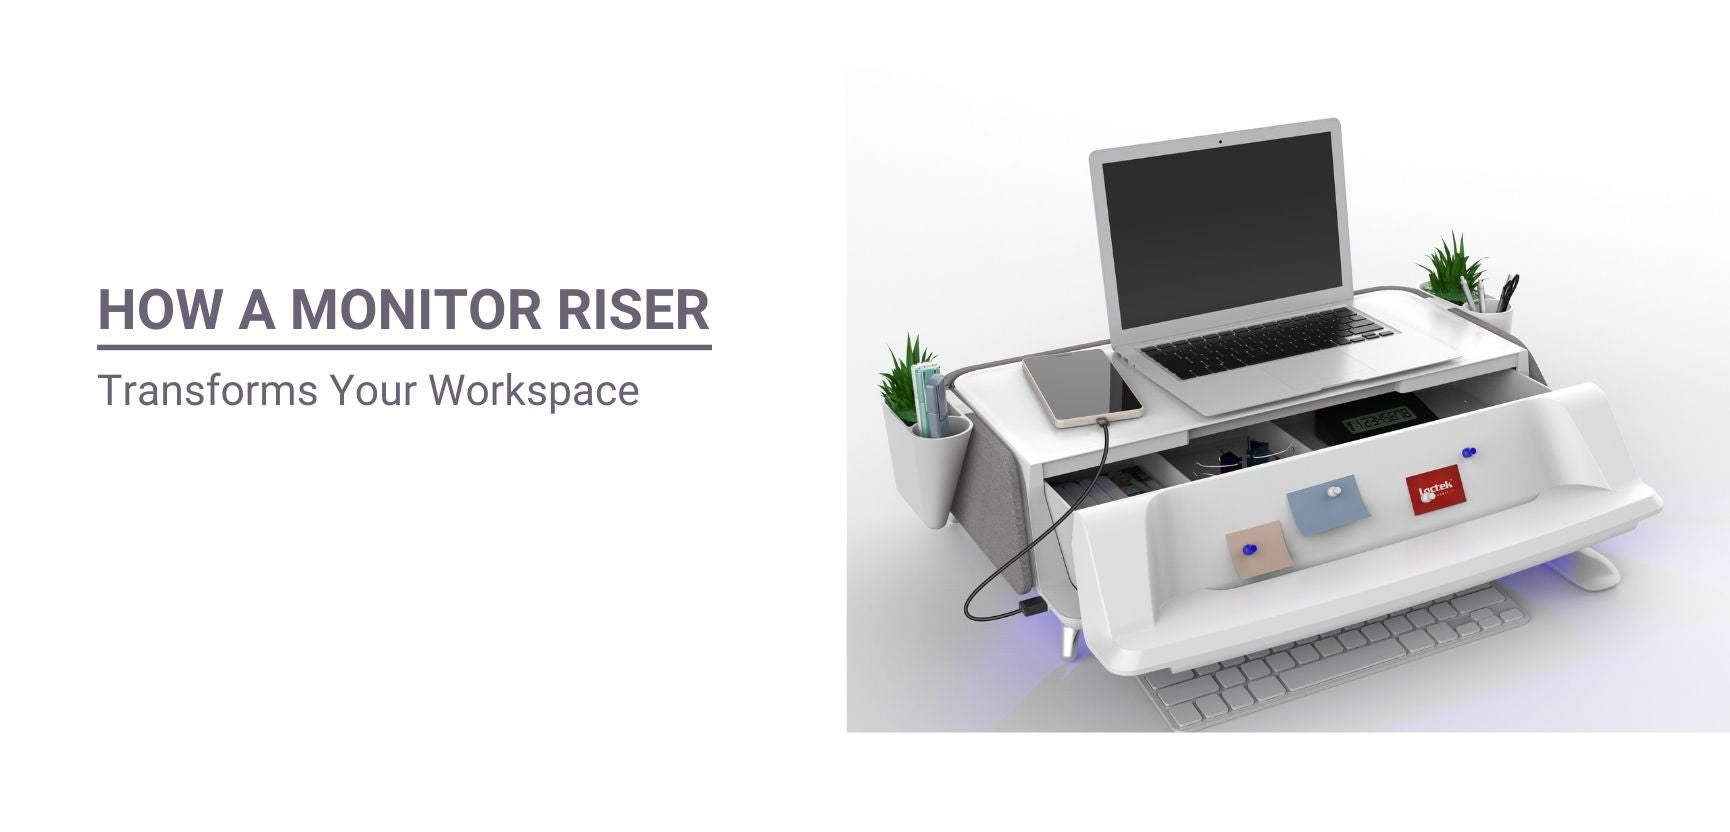 How a Monitor Riser Transforms Your Workspace